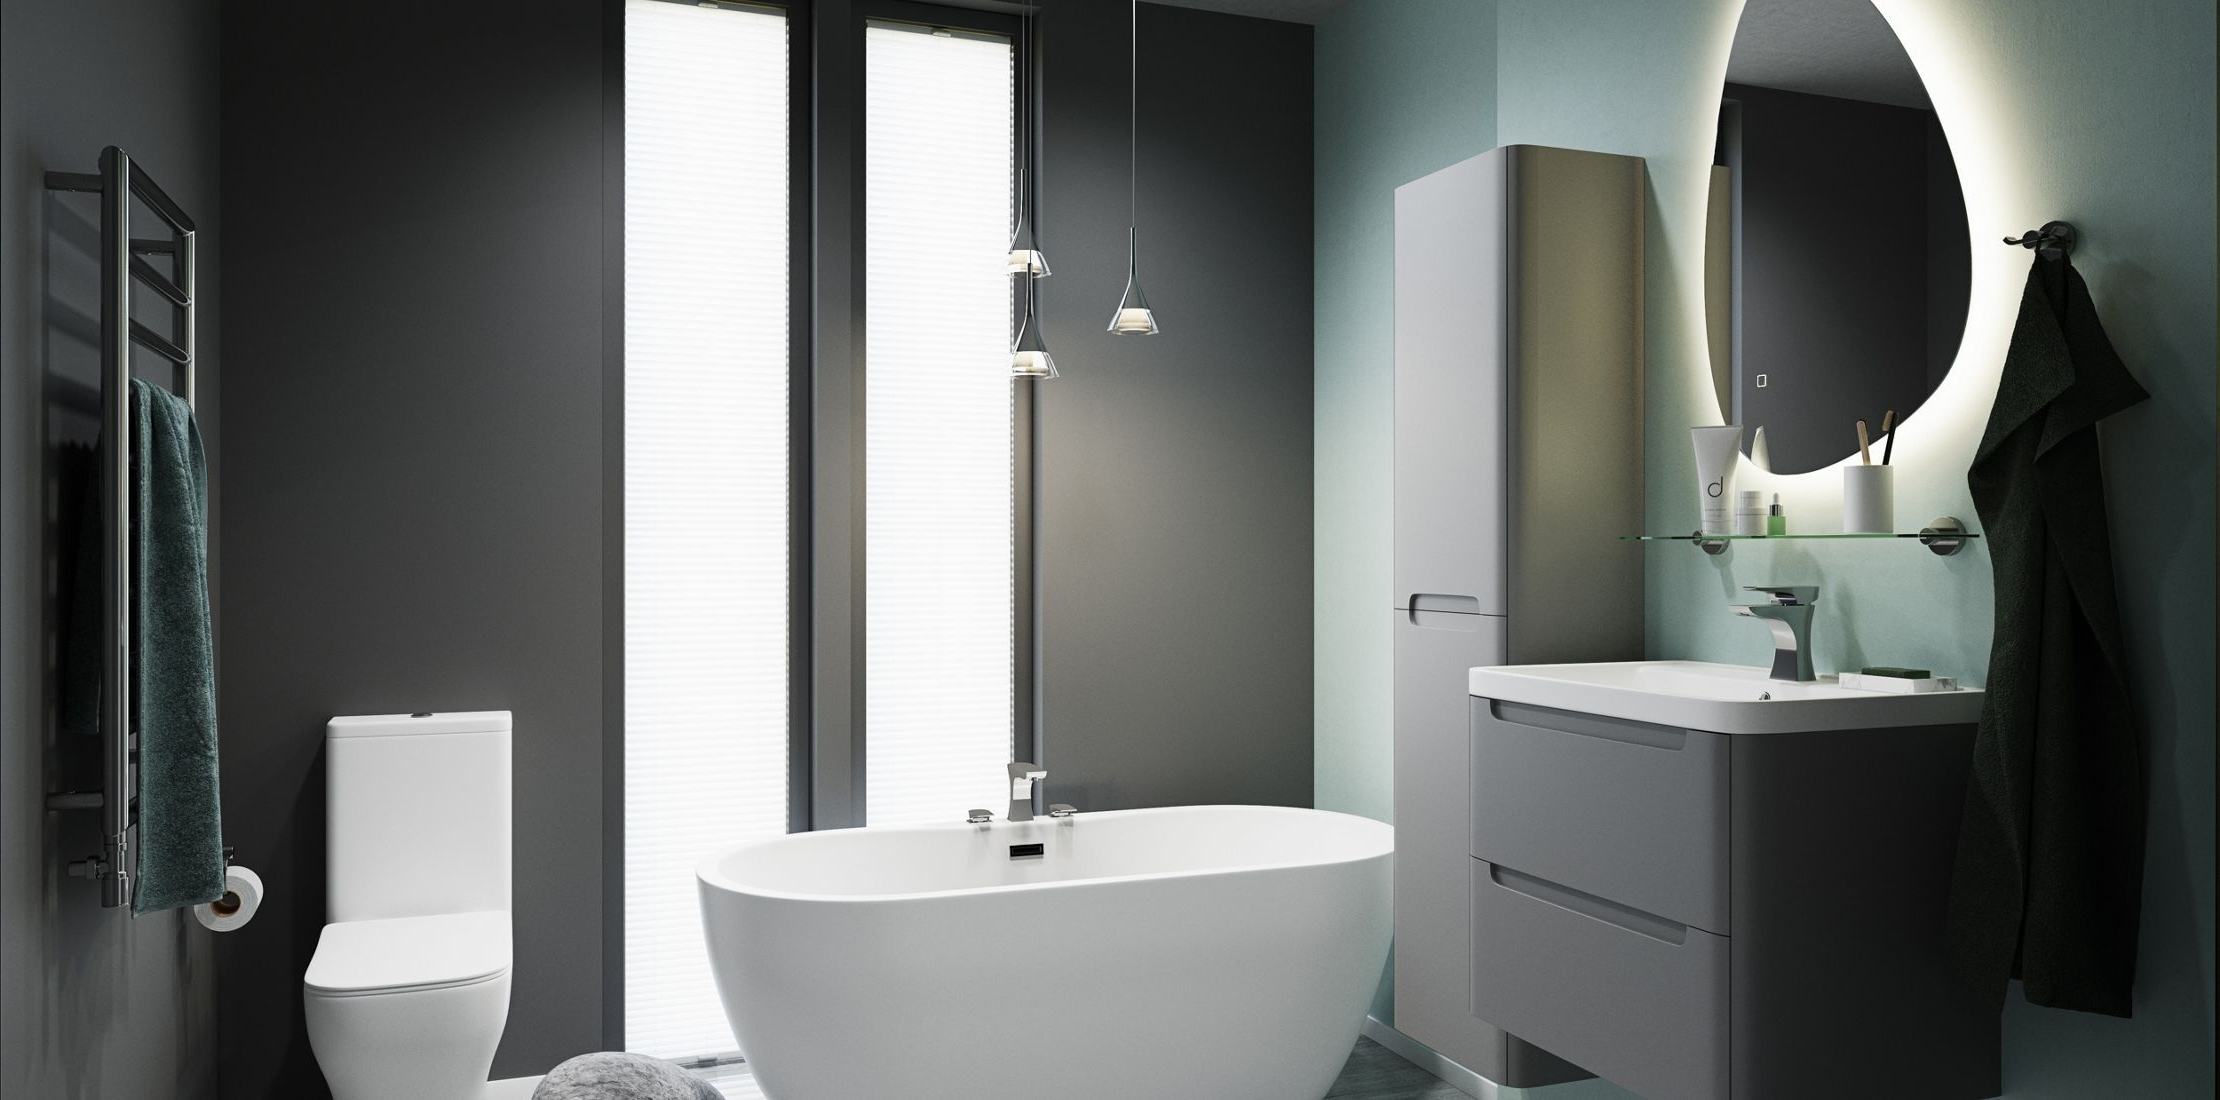 Malmo Furniture | Wickes.co.uk In 2020 | Bathroom Design 10+ Wickes Bathroom Design Inspirations